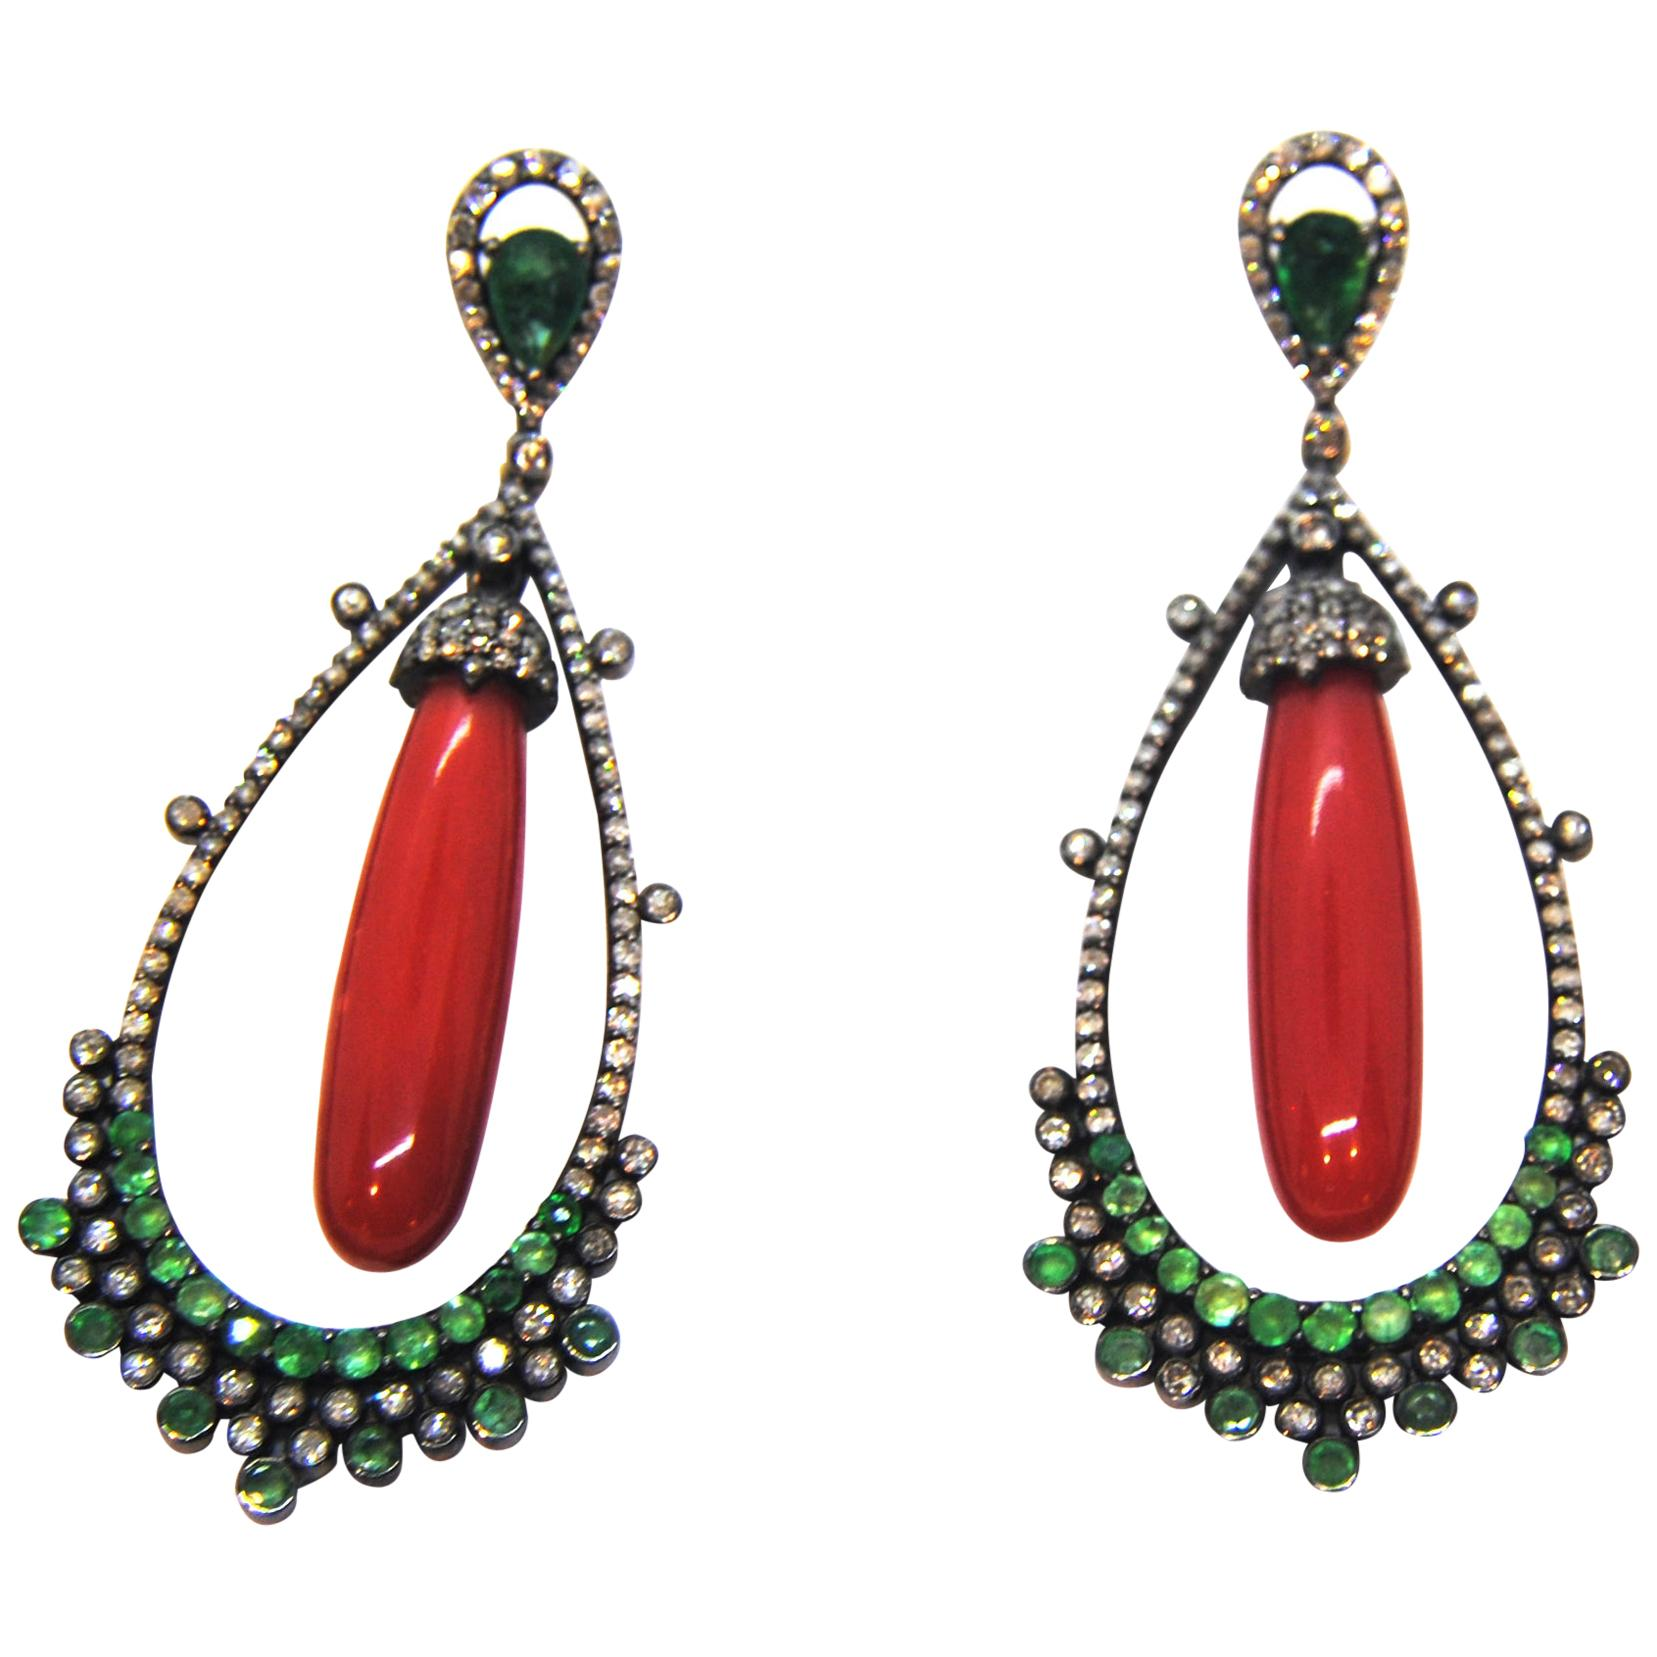 Coral, Diamond, and Emerald Chandelier 18 Karat Gold and Silver Earrings